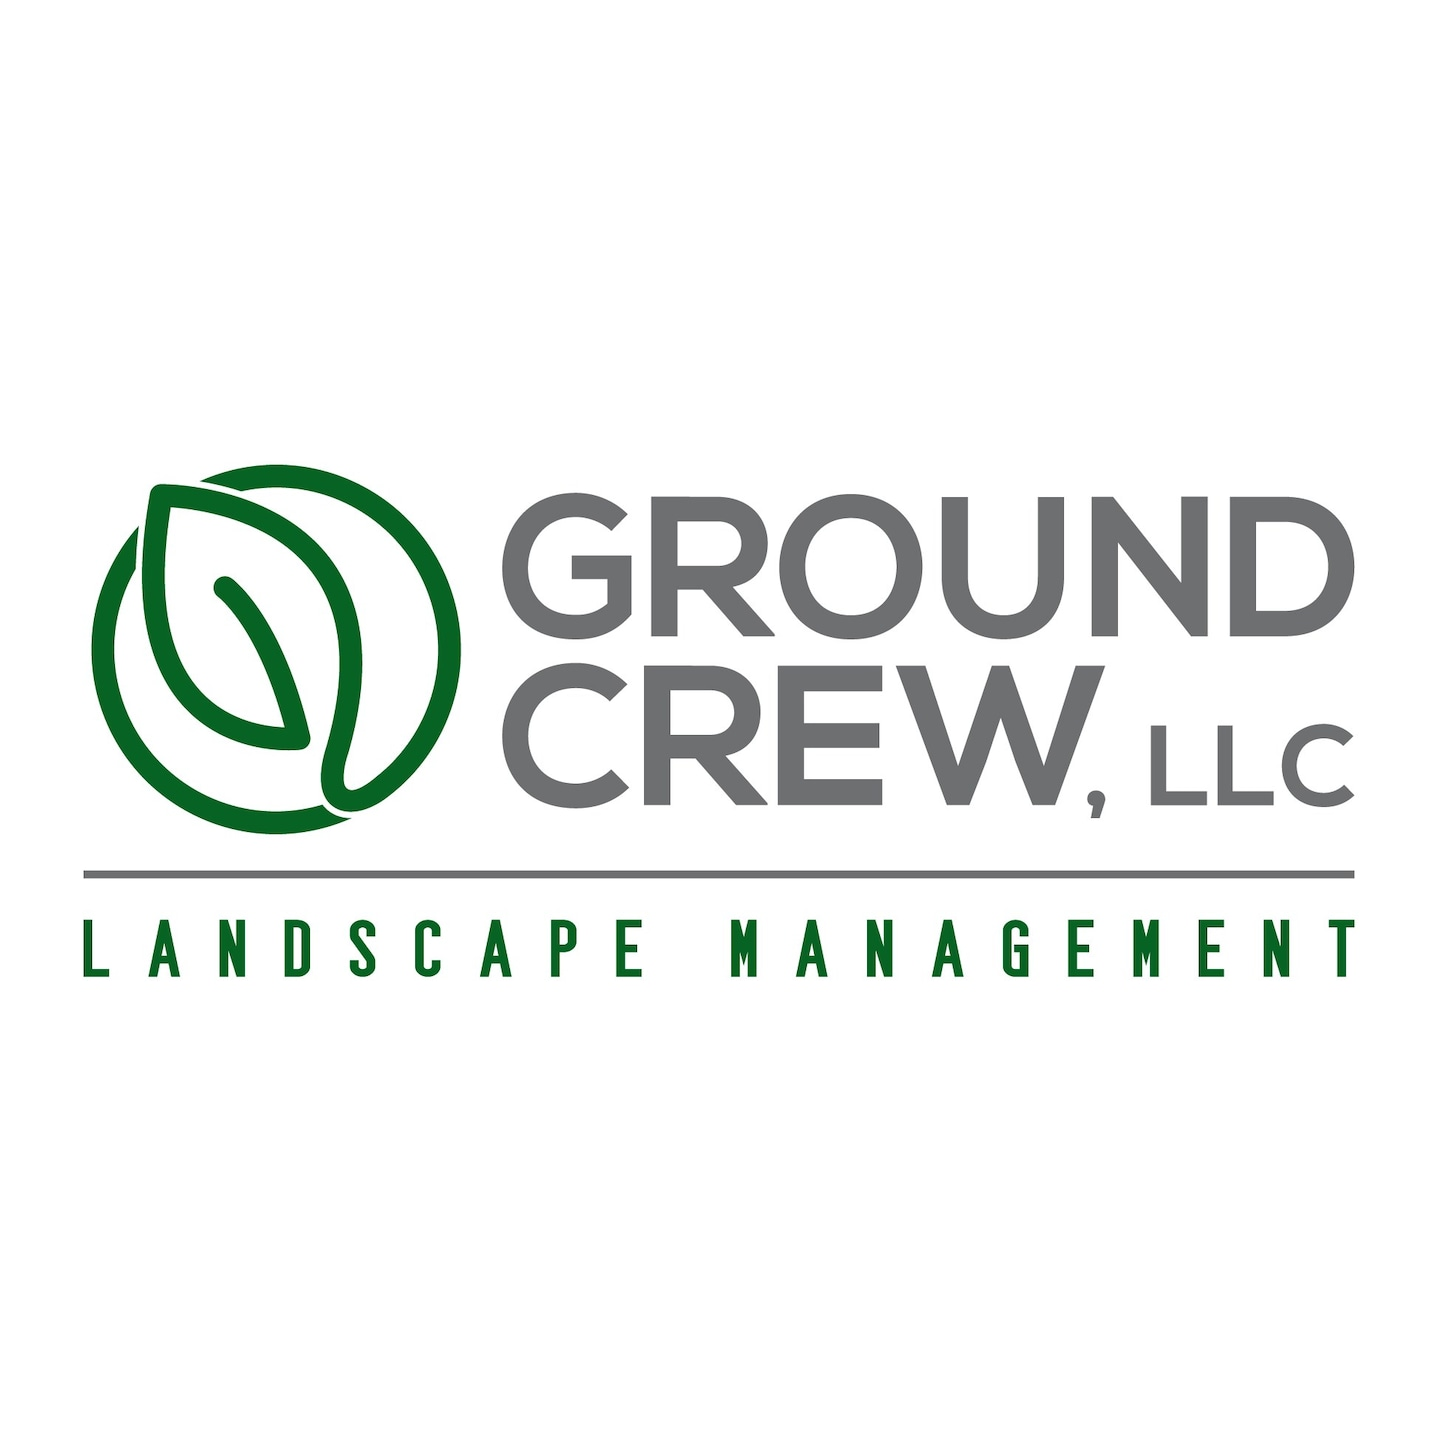 Ground Crew, LLC